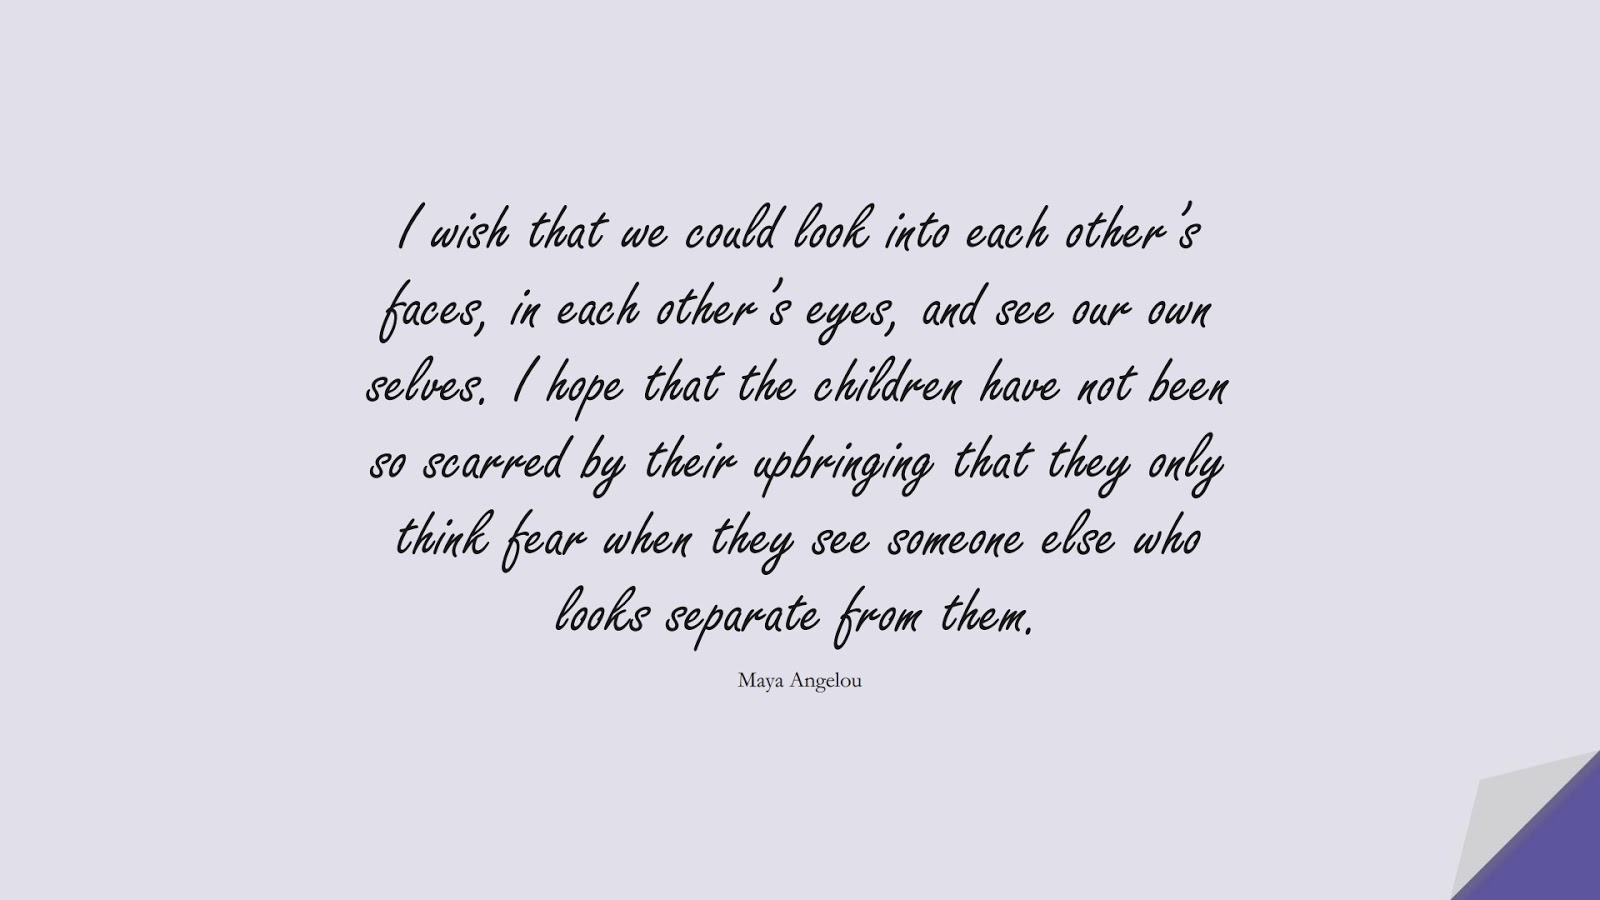 I wish that we could look into each other's faces, in each other's eyes, and see our own selves. I hope that the children have not been so scarred by their upbringing that they only think fear when they see someone else who looks separate from them. (Maya Angelou);  #MayaAngelouQuotes